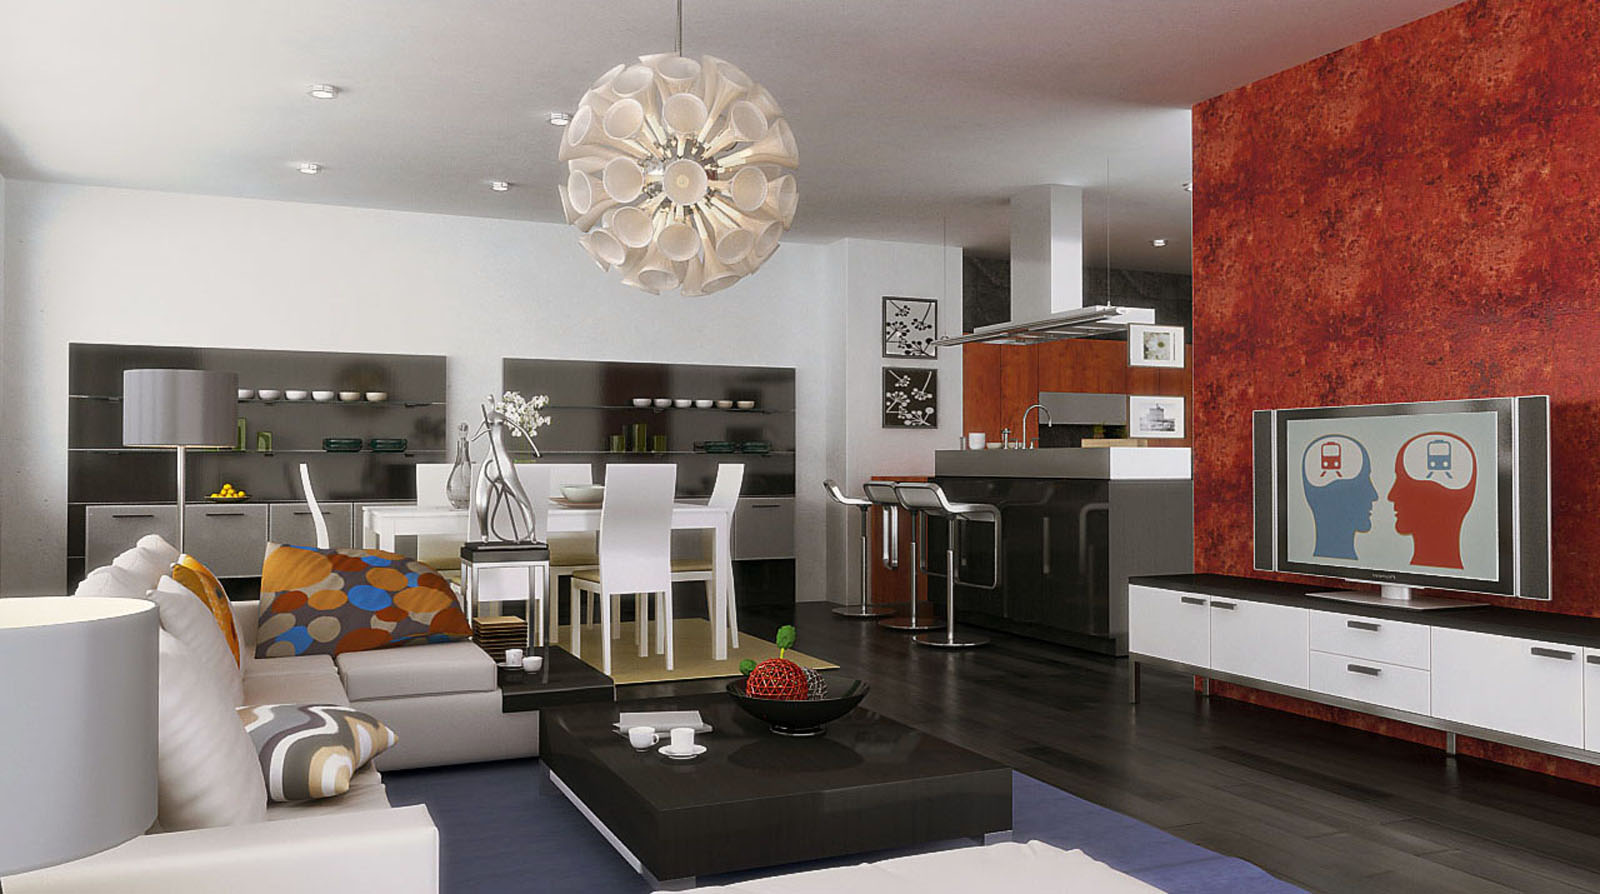 Drawn room kitchen room Kitchen Combo Small San Living